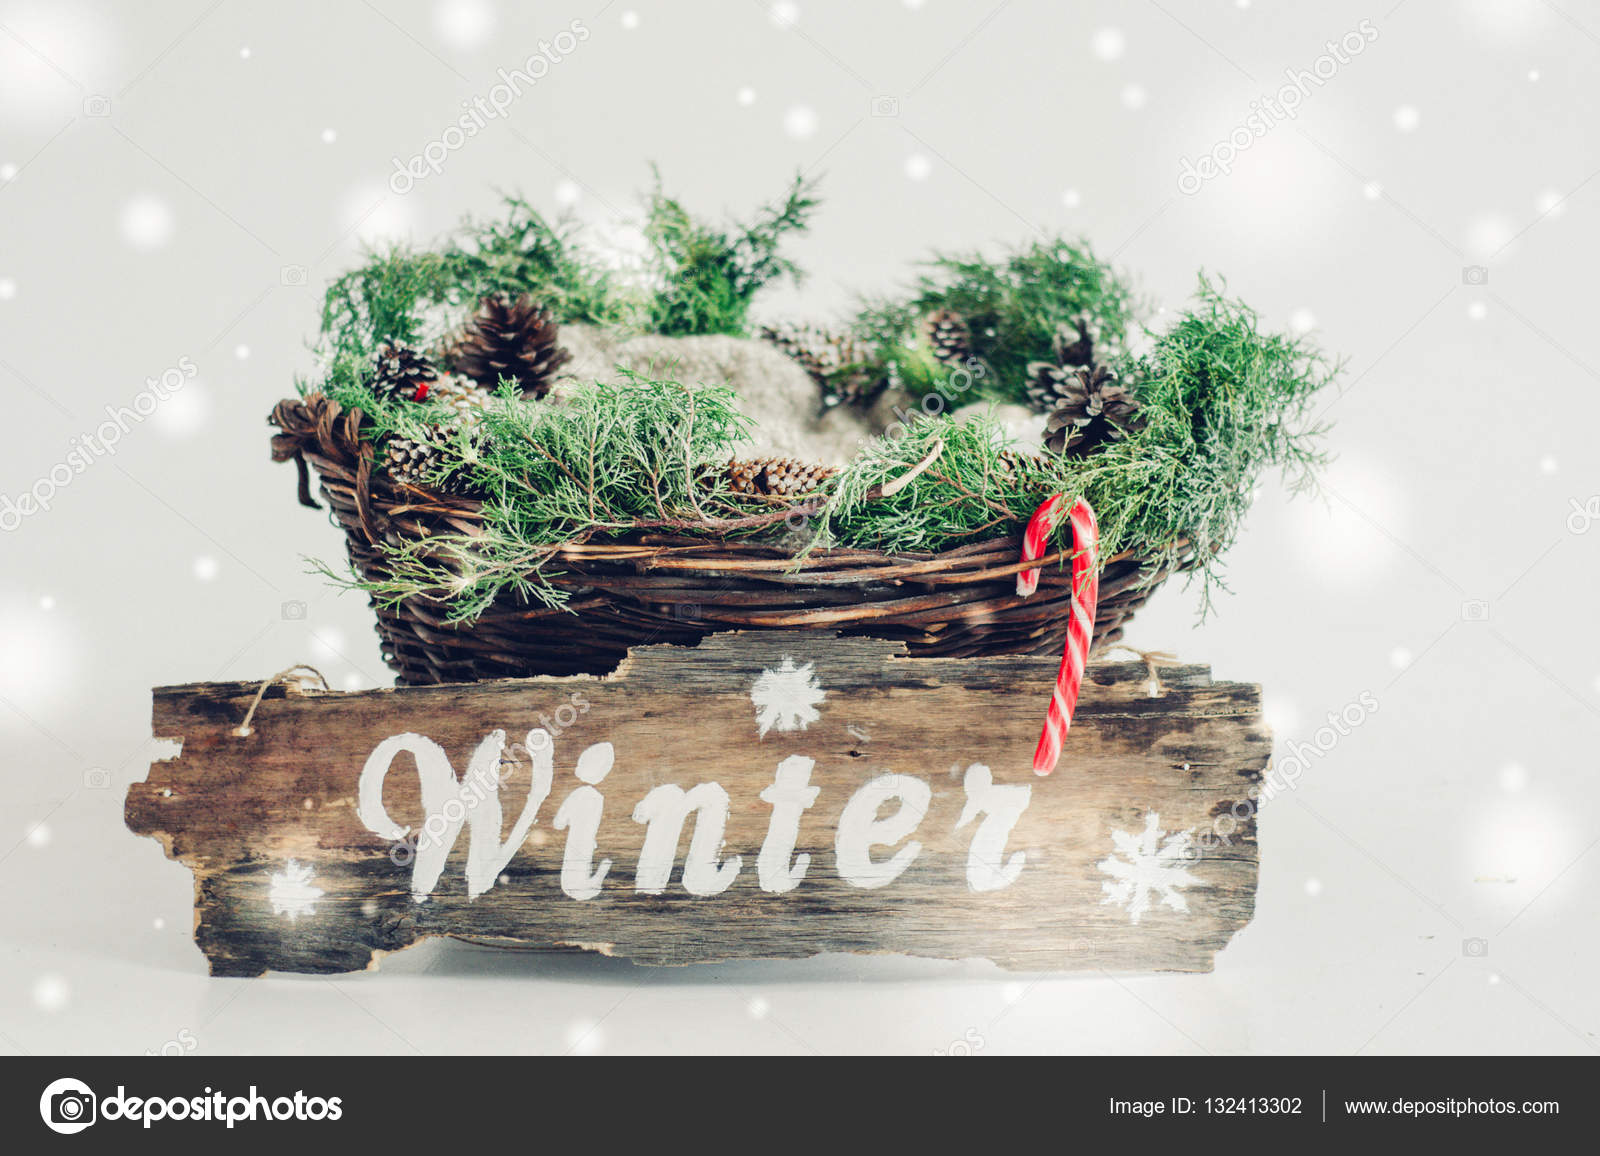 basket baby decorations lettering winter snow spruce arborvitae pine cones photo by tanyaxbtgmailcom